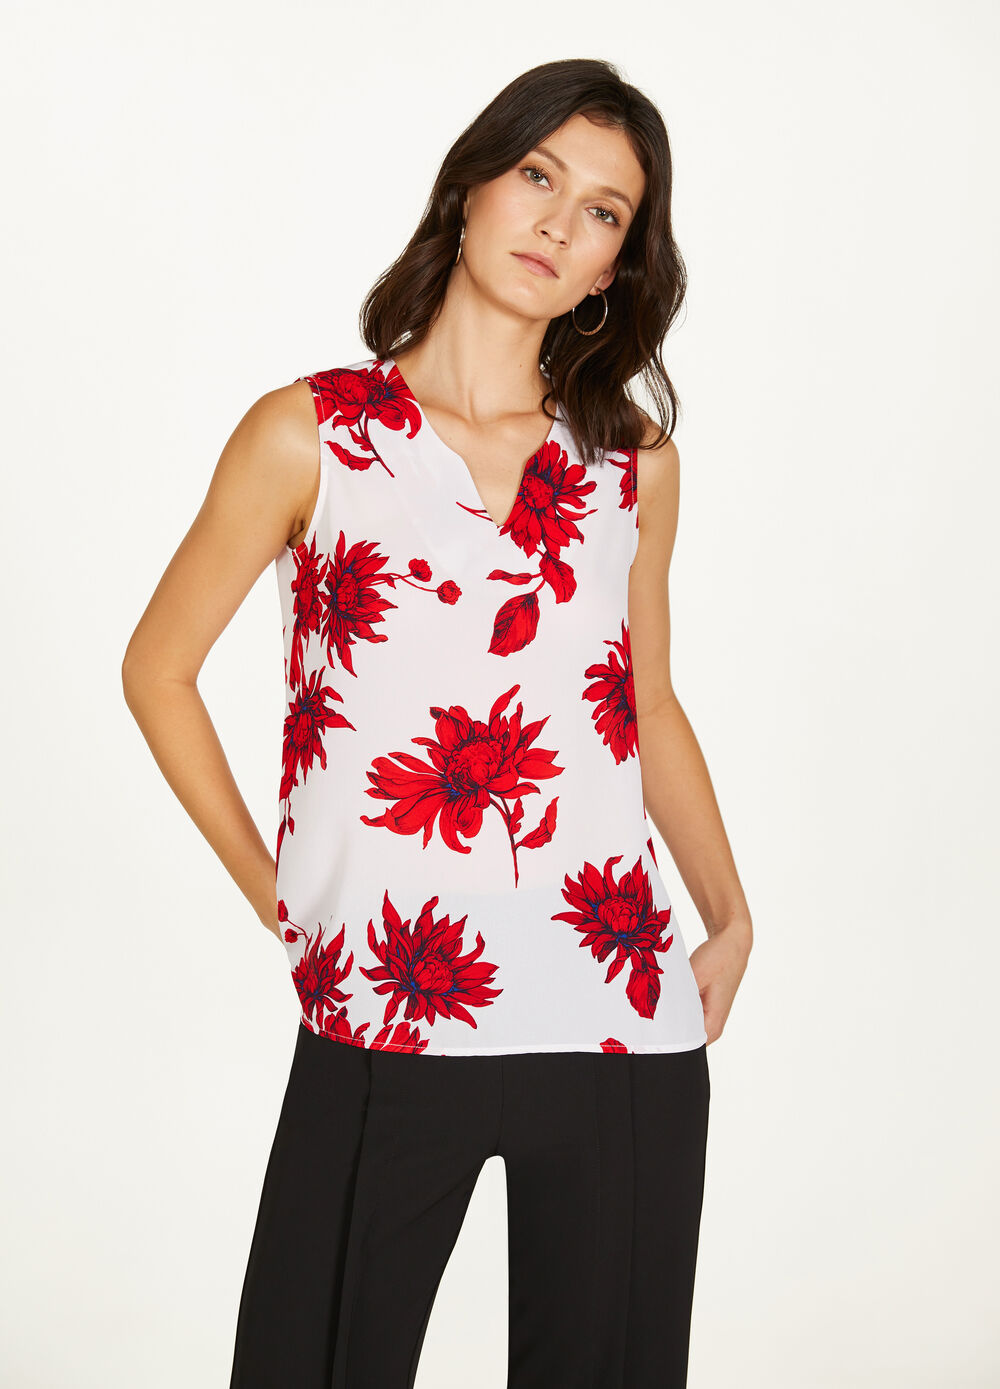 Sleeveless blouse with all-over floral print